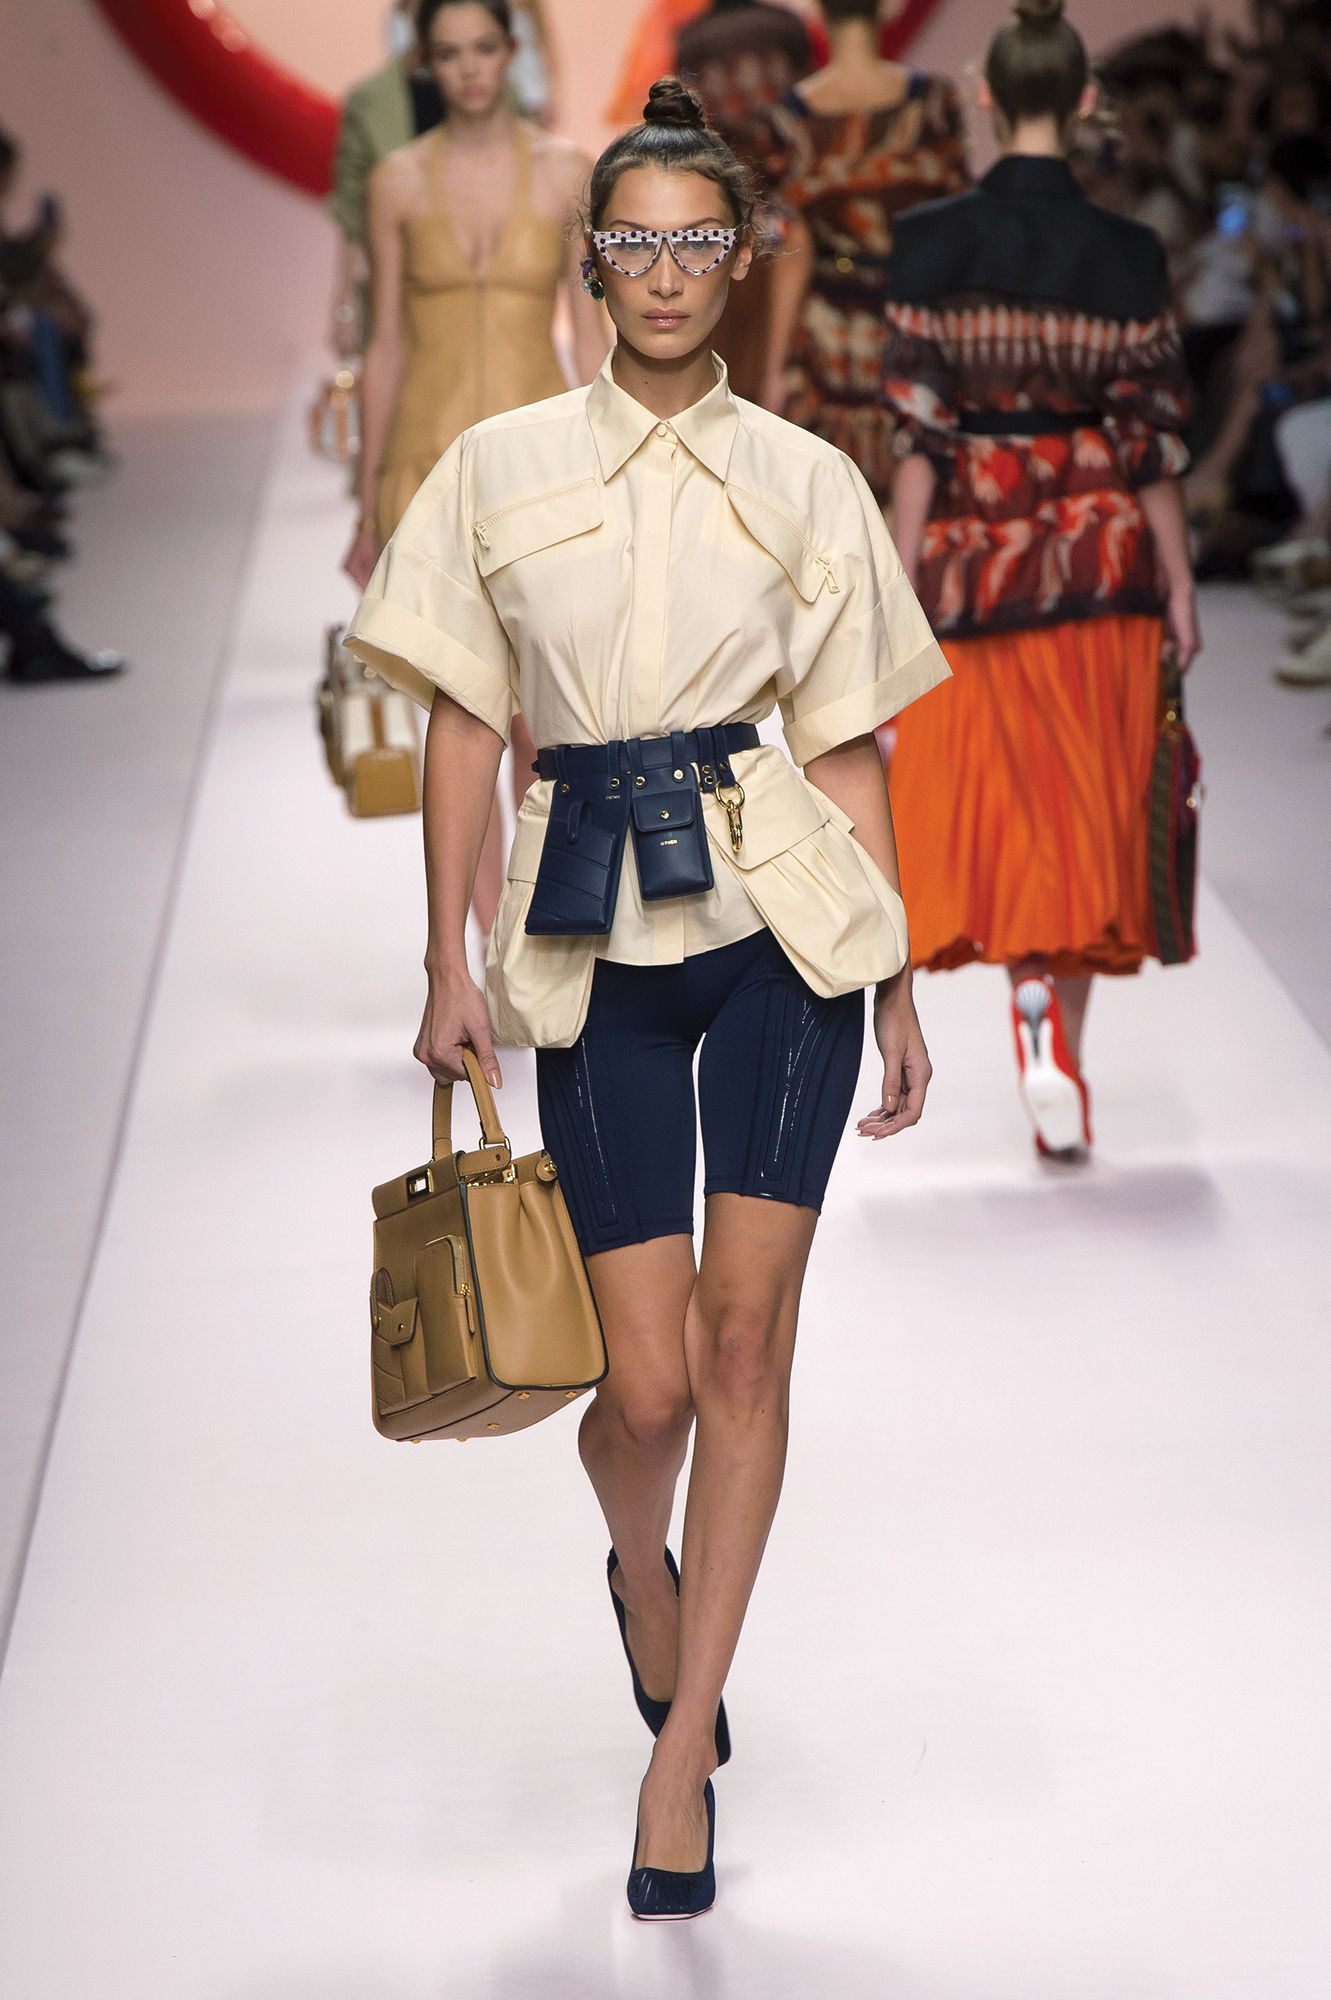 FENDI | Ready-to-wear spring/summer 2019